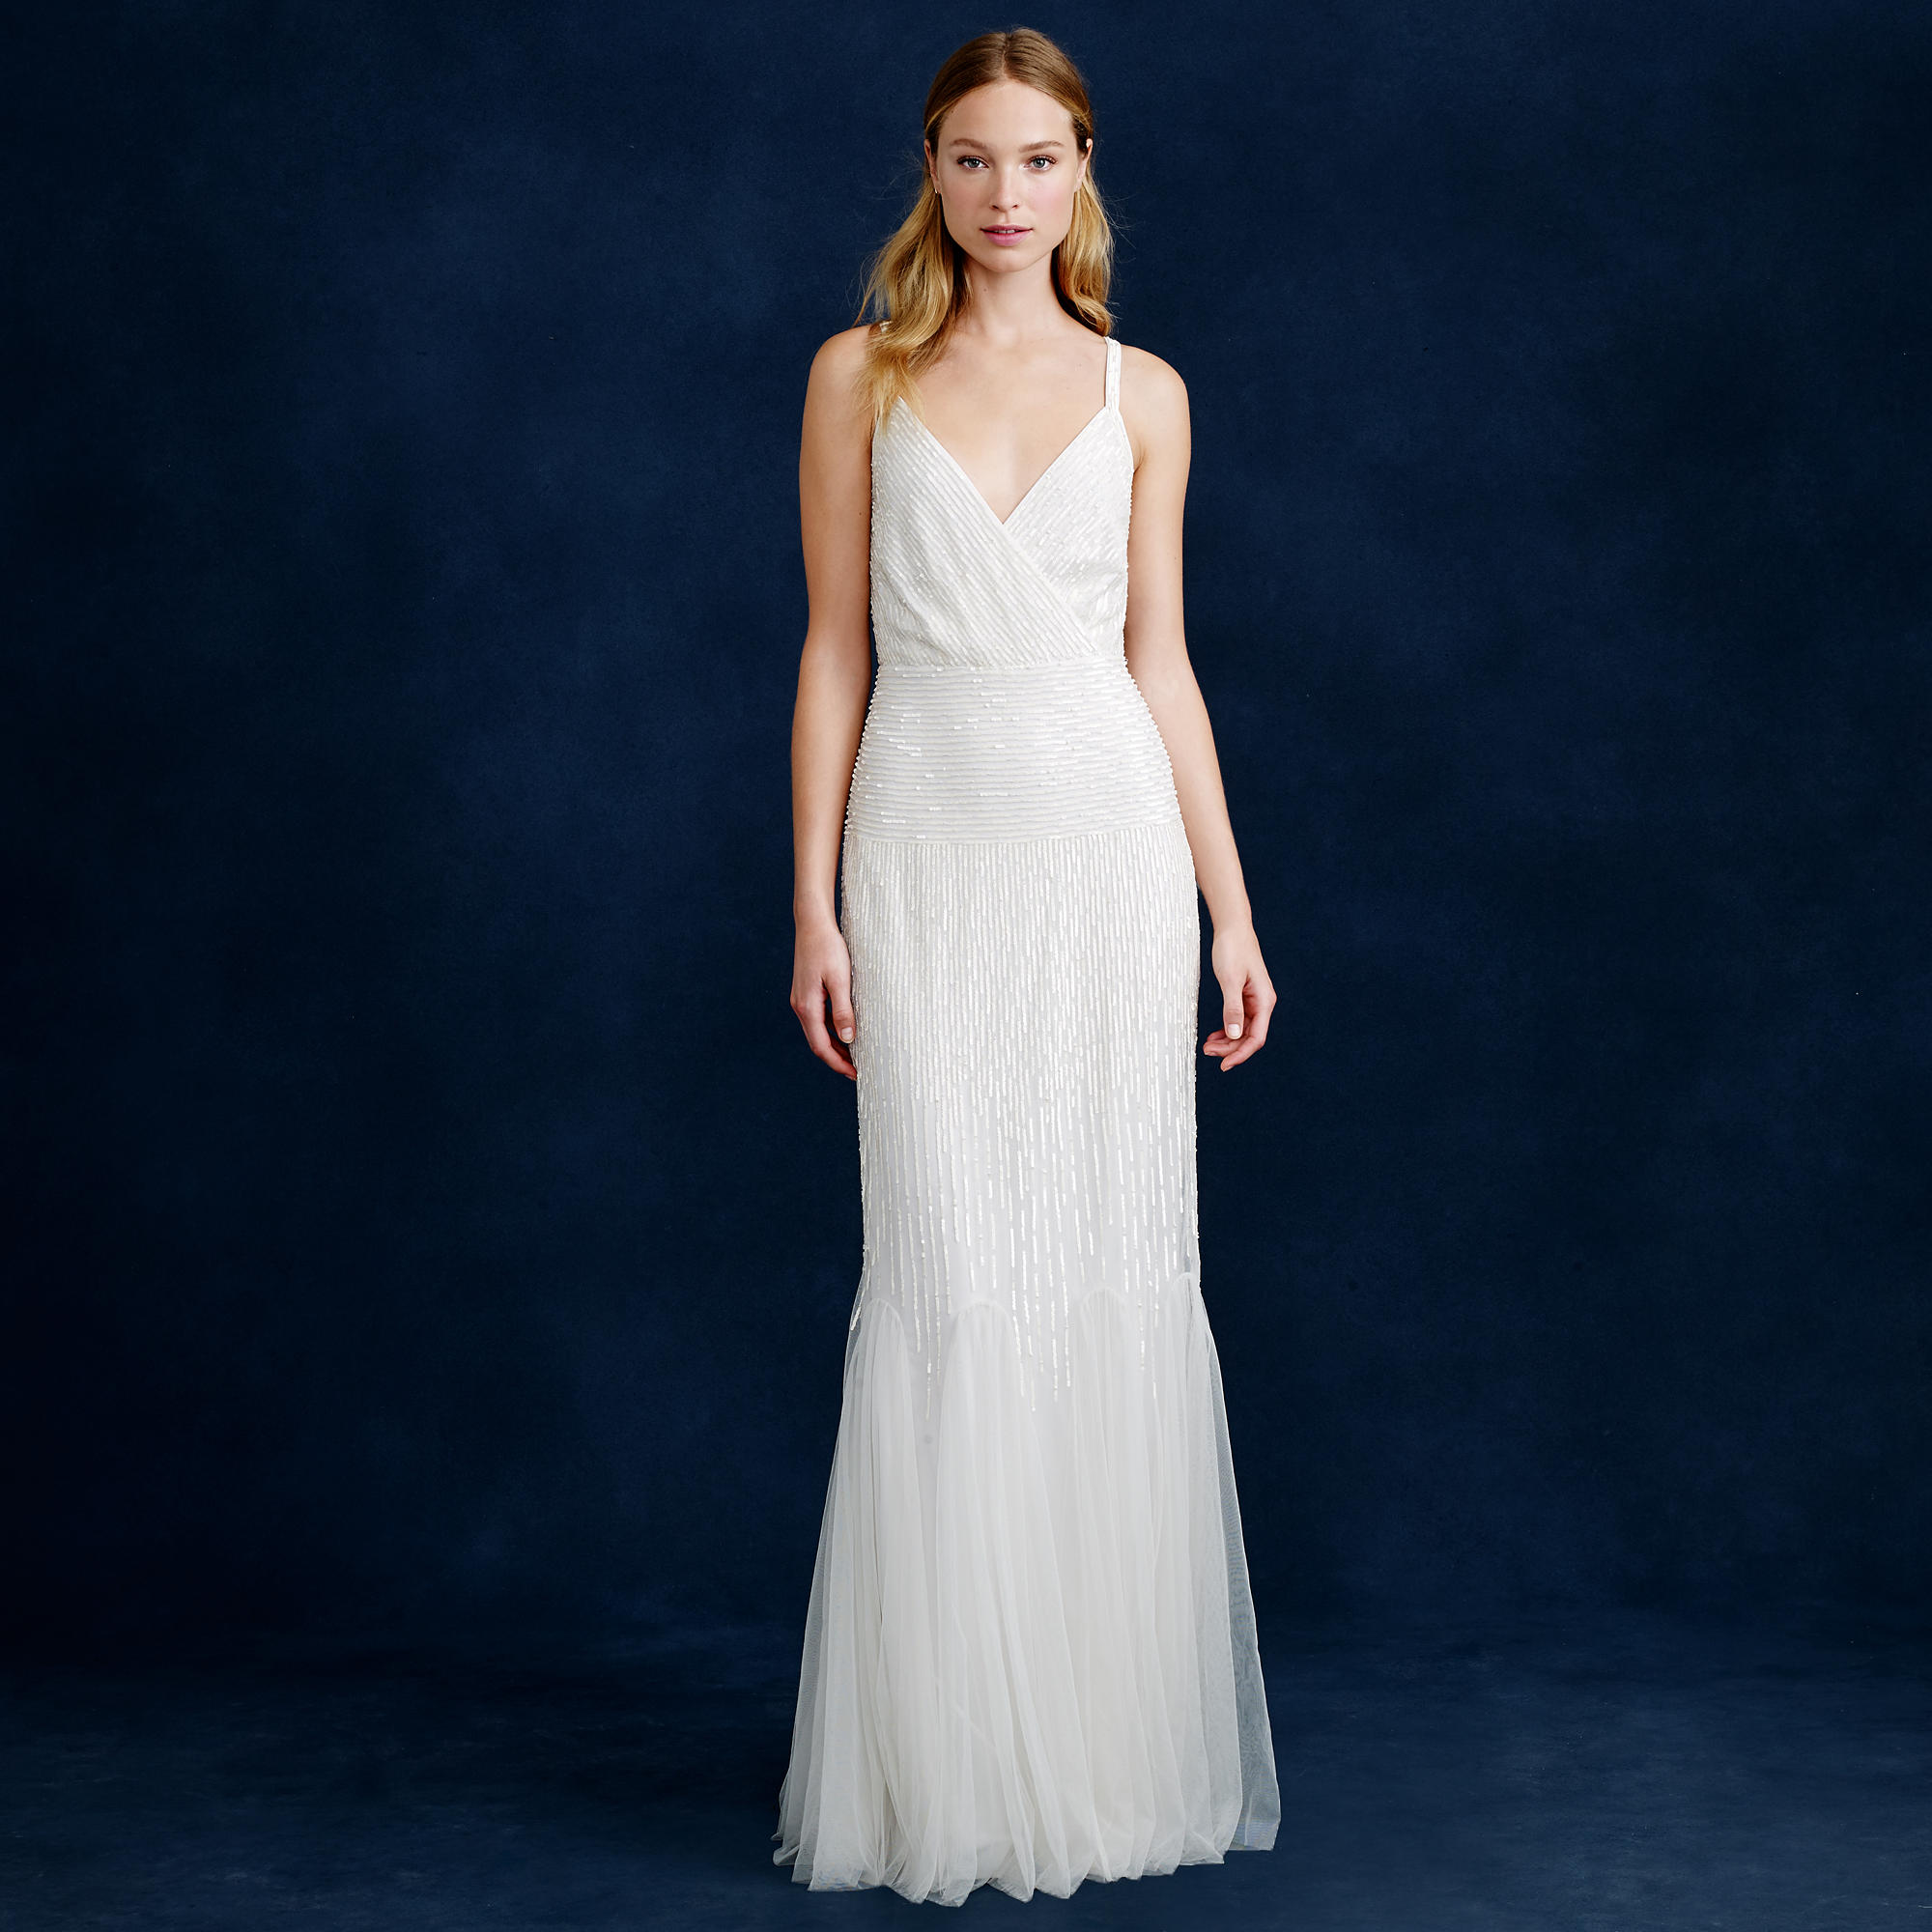 Jew is getting rid of its bridal line but on the bright side j crew junglespirit Choice Image